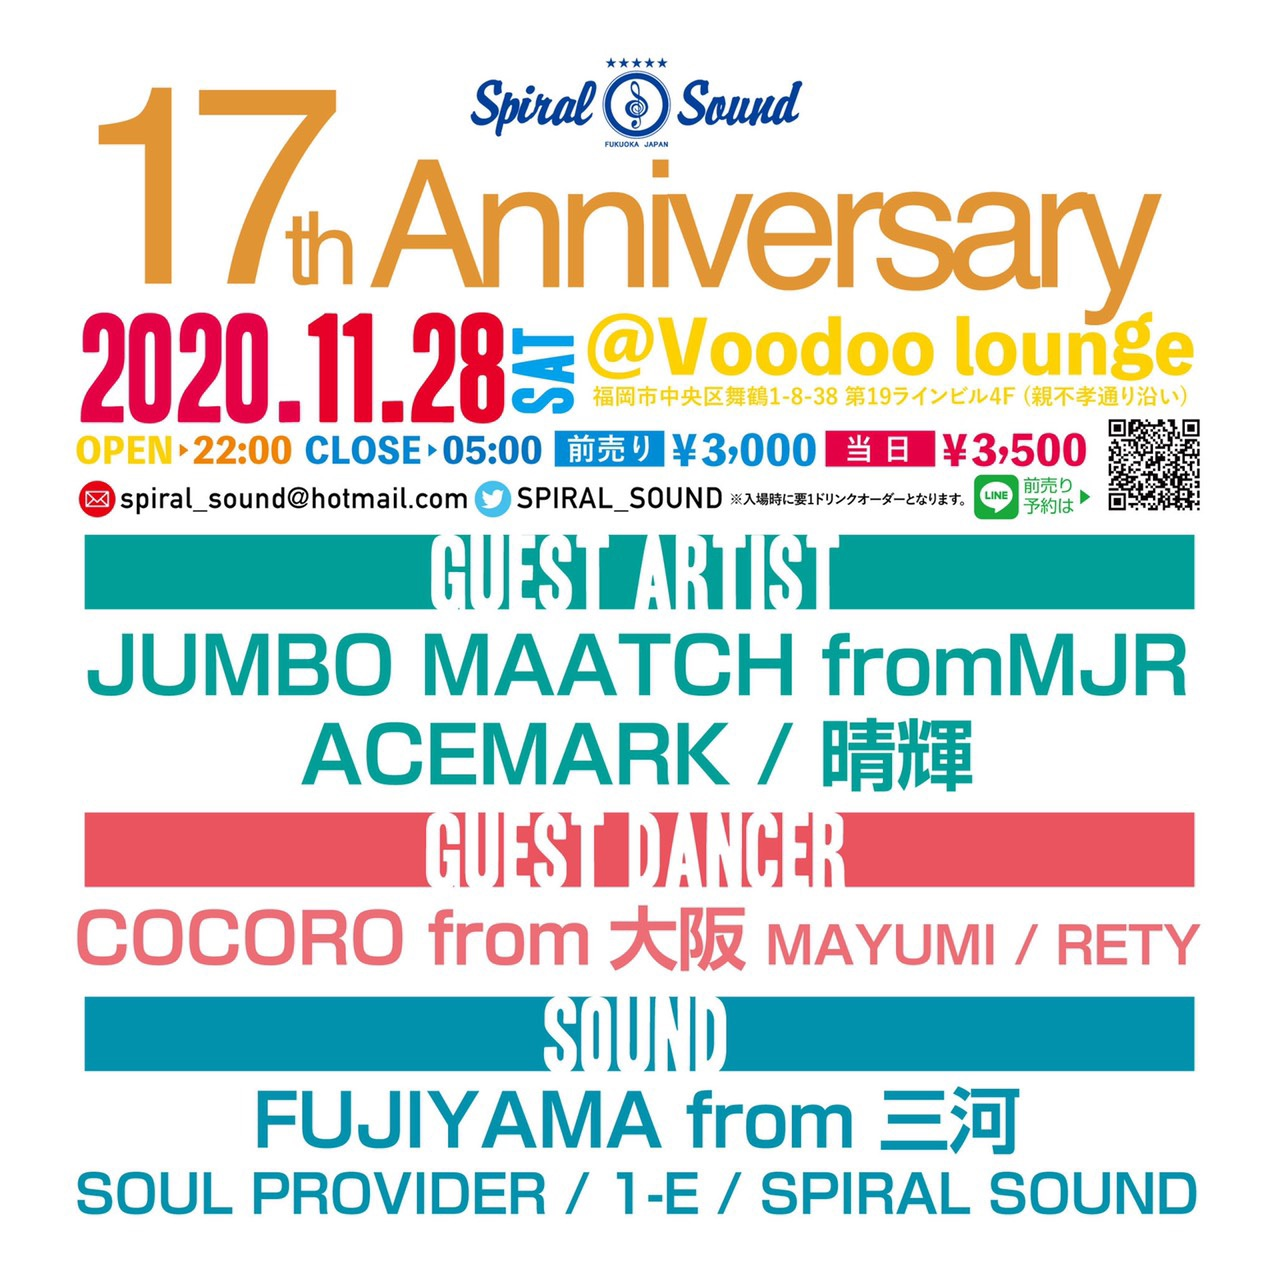 11/28(土)開催【SPIRAL SOUND 17th Anniversary】